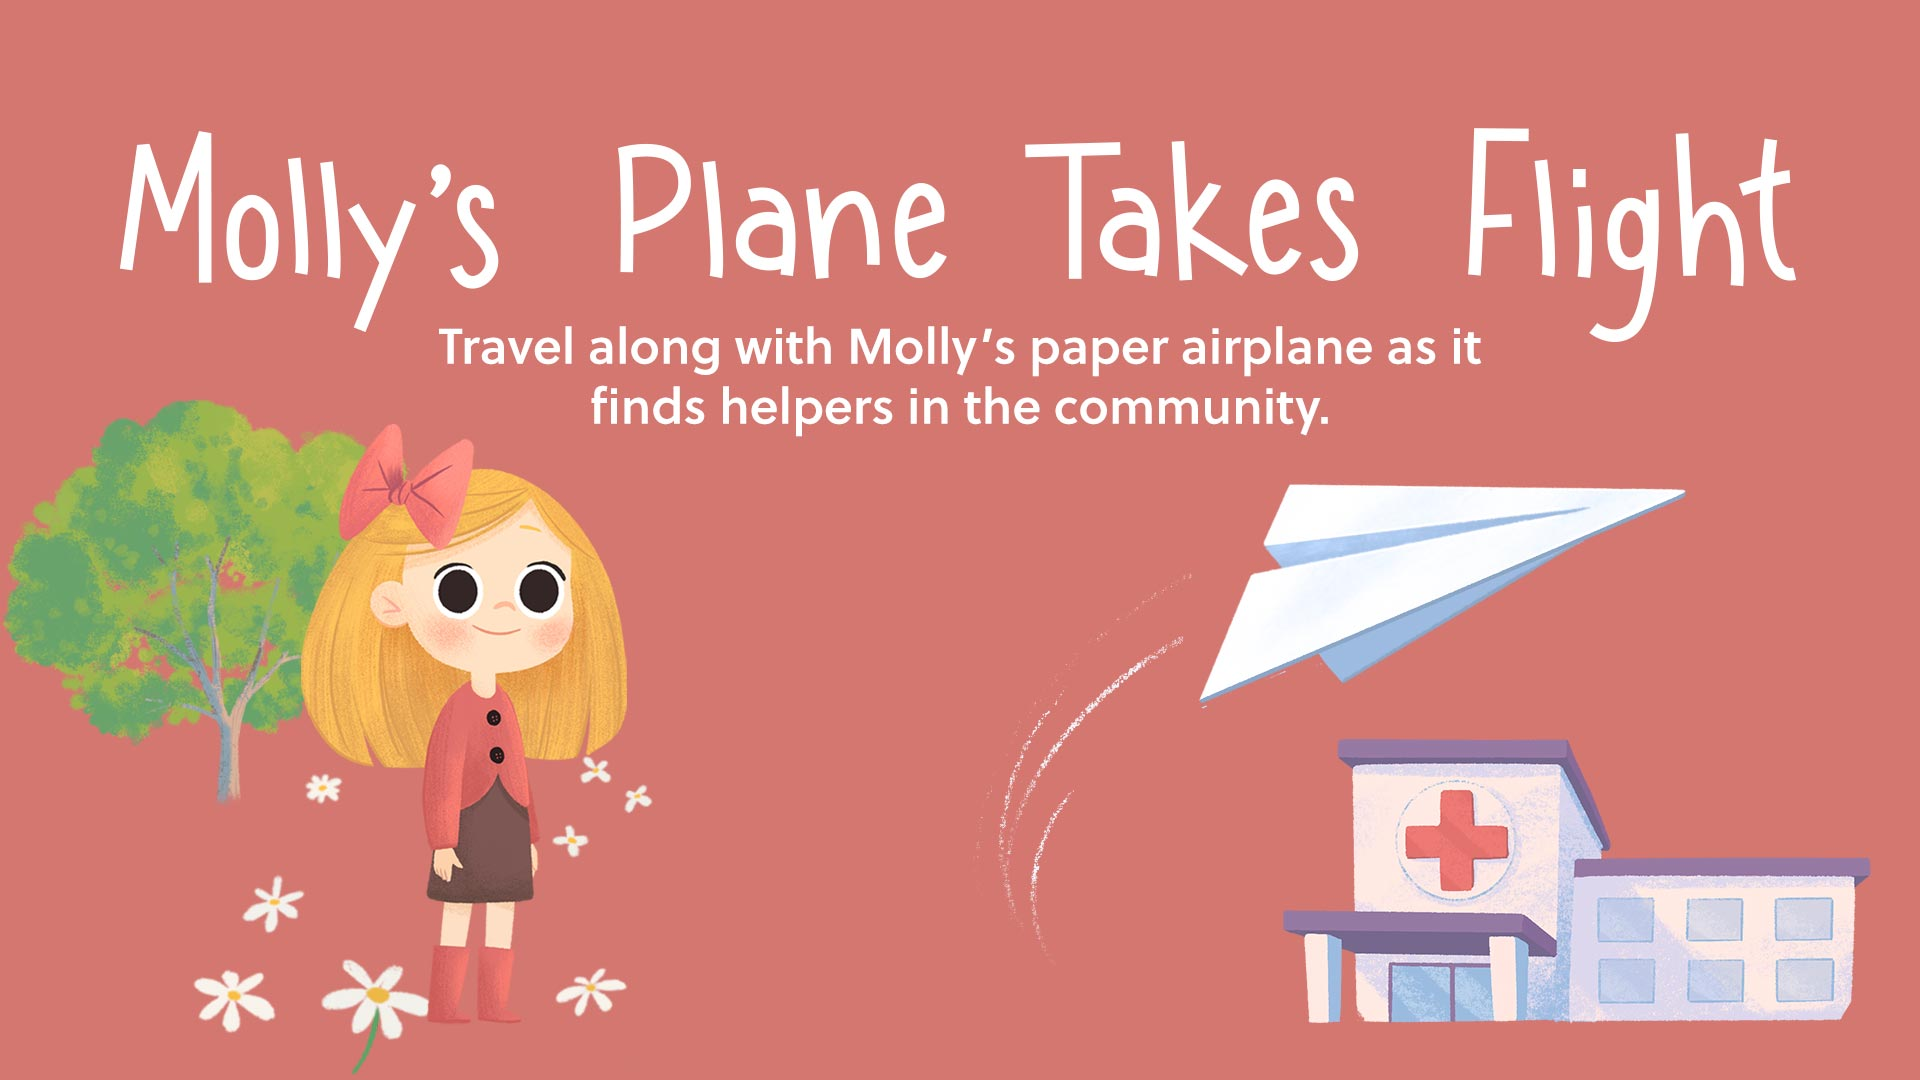 Molly's Plane Takes Flight - Travel along with Molly's paper airplane as it finds helpers in the community.